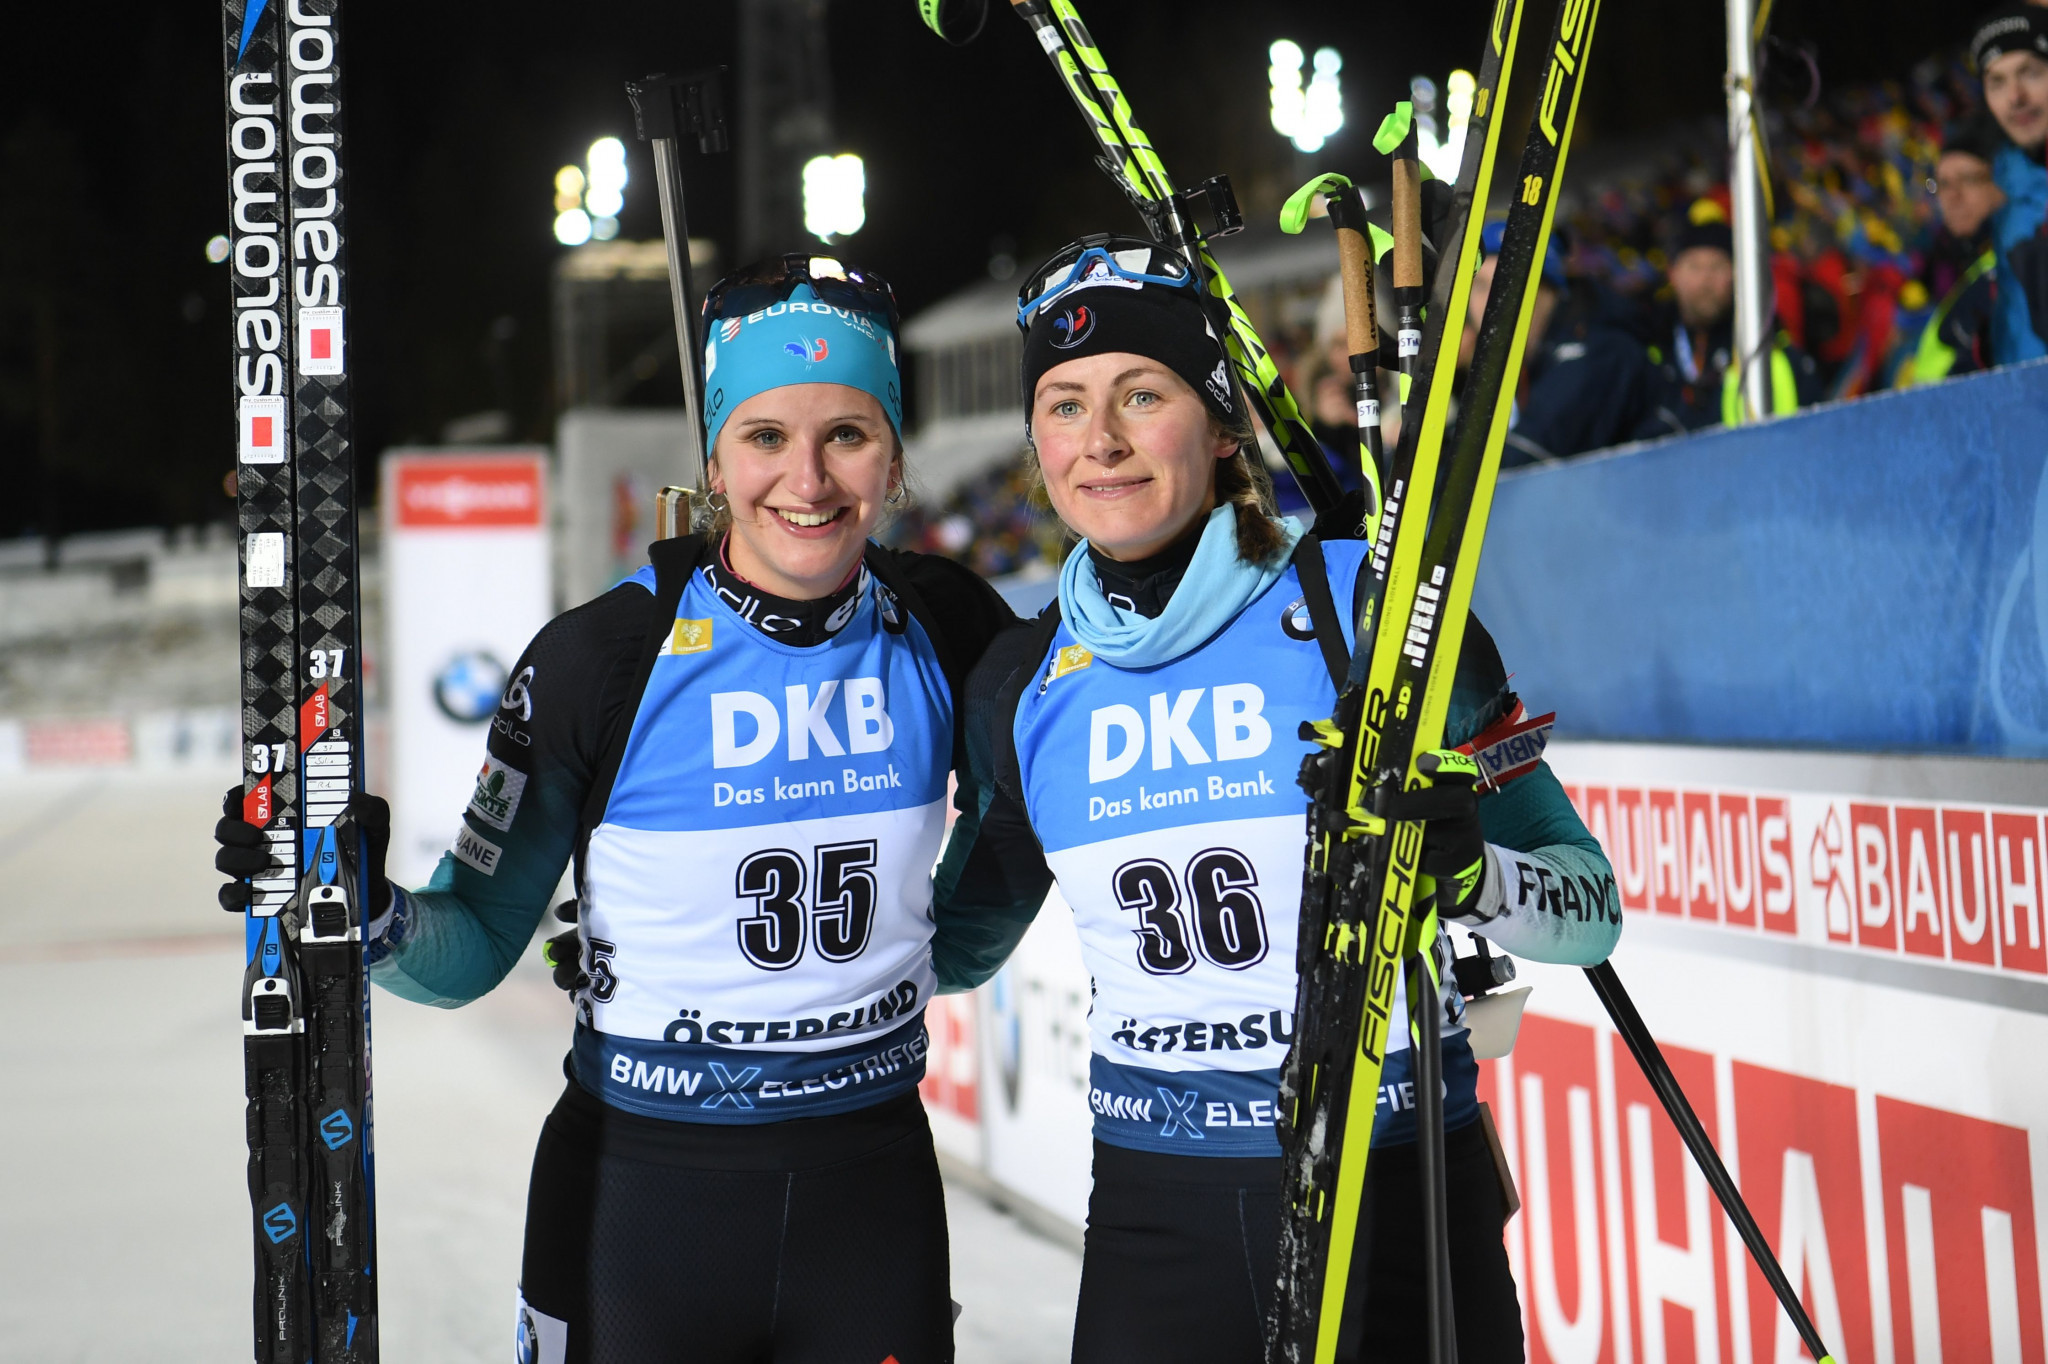 France's Justine Braisaz, right, and compatriot Julia Simon ranked first and third, respectively, in the women's 15km individual competition ©Getty Images